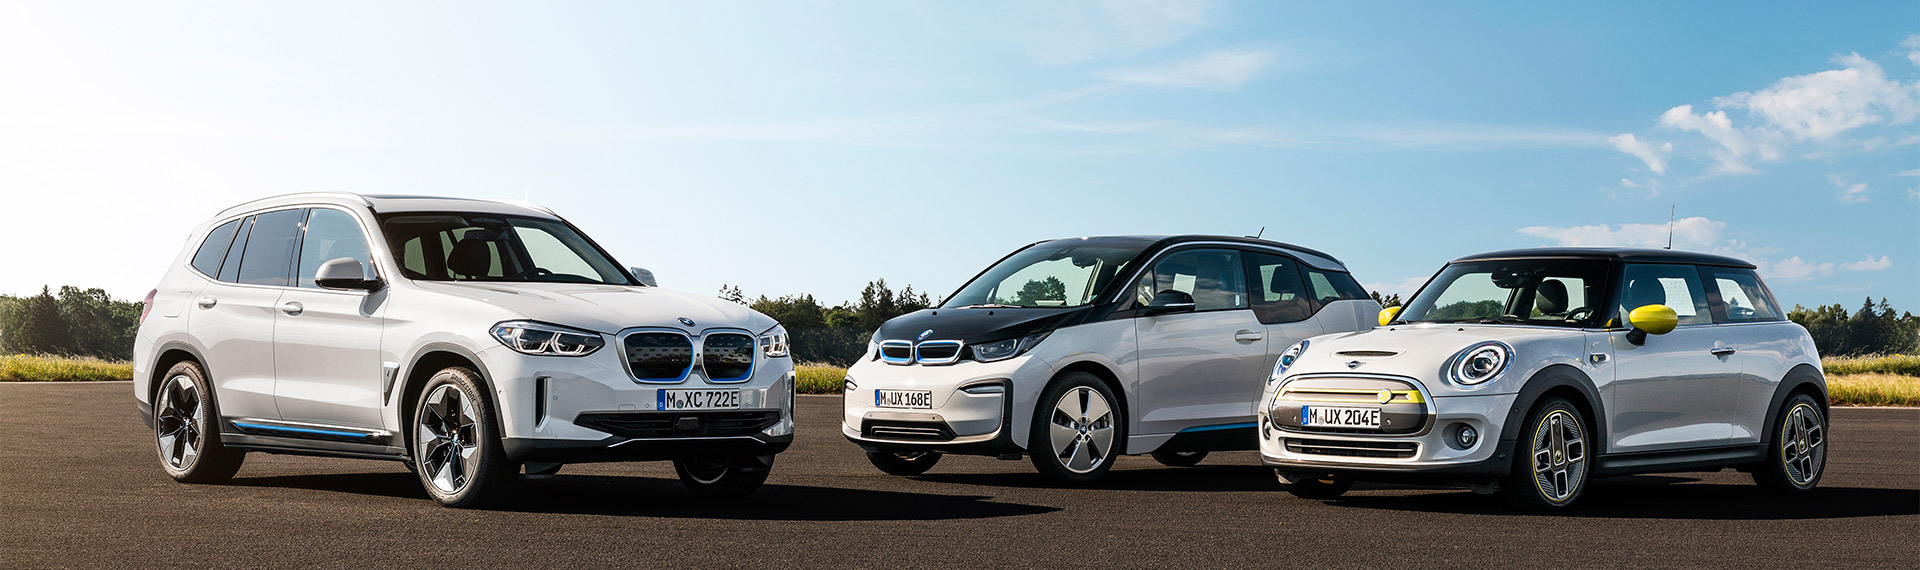 Group shot of BMW and Mini electric vehicles